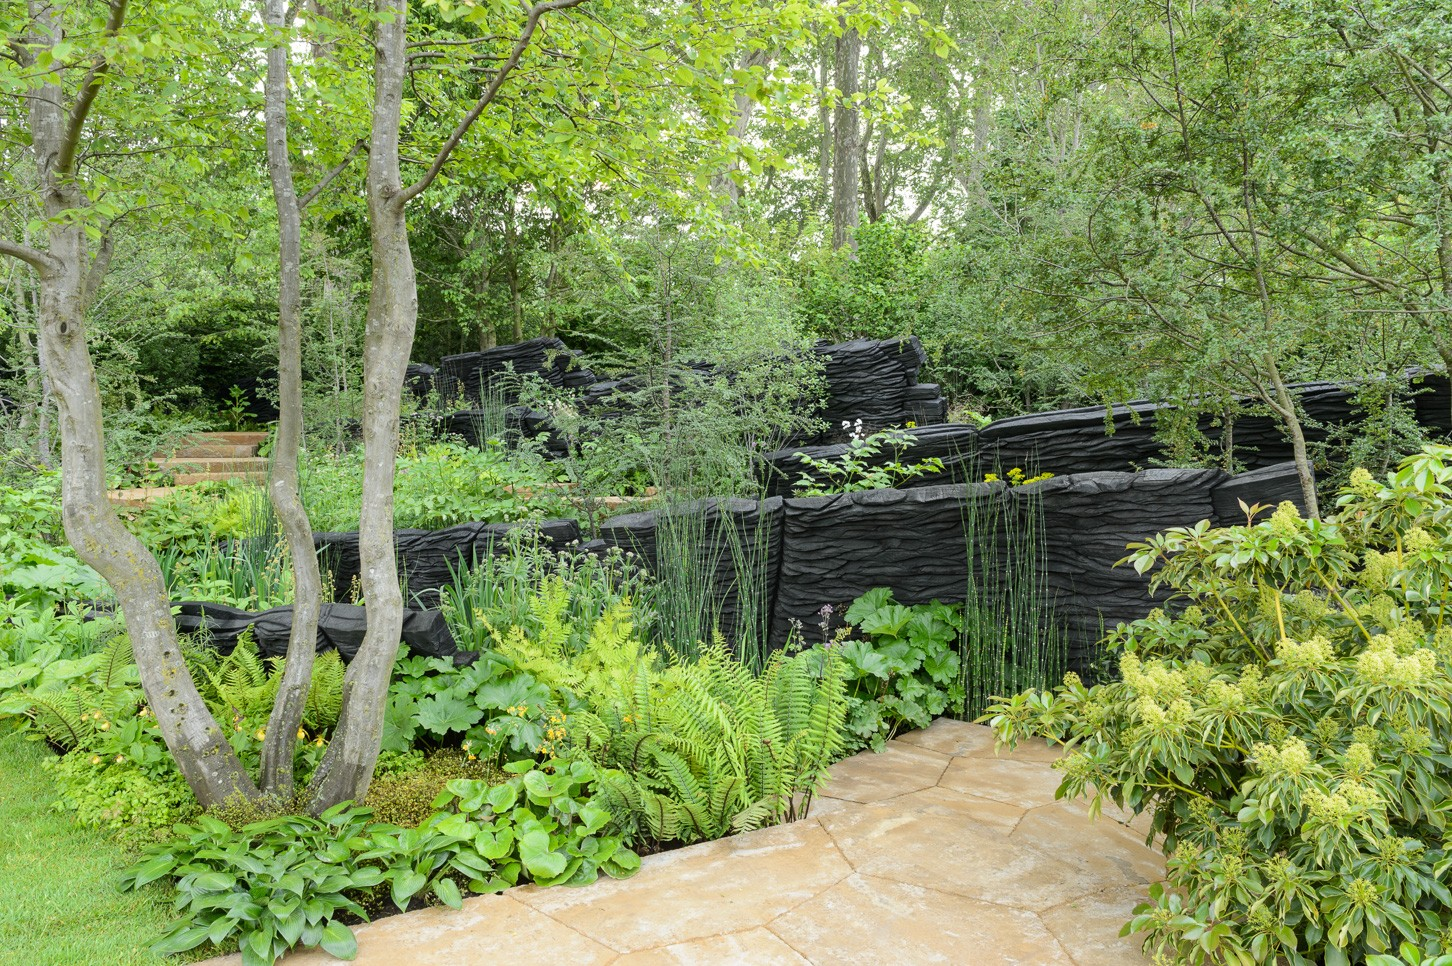 The M&G Garden by Andy Sturgeon at the RHS Chelsea Flower Show 2019